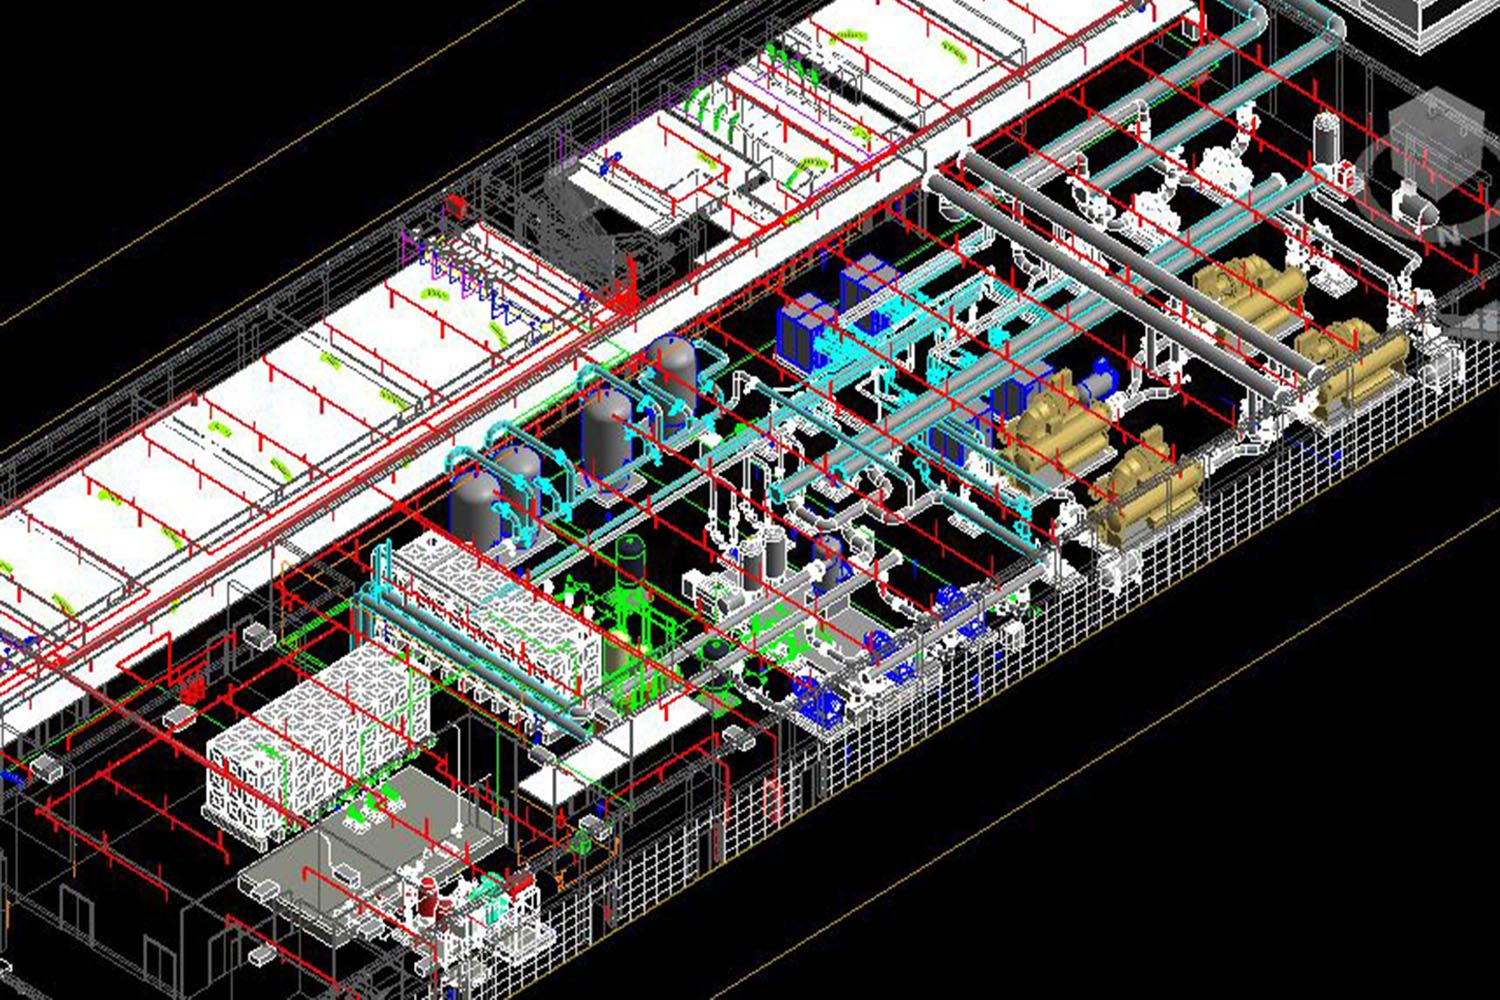 Cad Outsourcing Is One Of The Leading Kpo Knowledge Hvac Plumbing Drawing Architecture Structural Mep Civil Bim Shop Fabrication Rebar Detailing